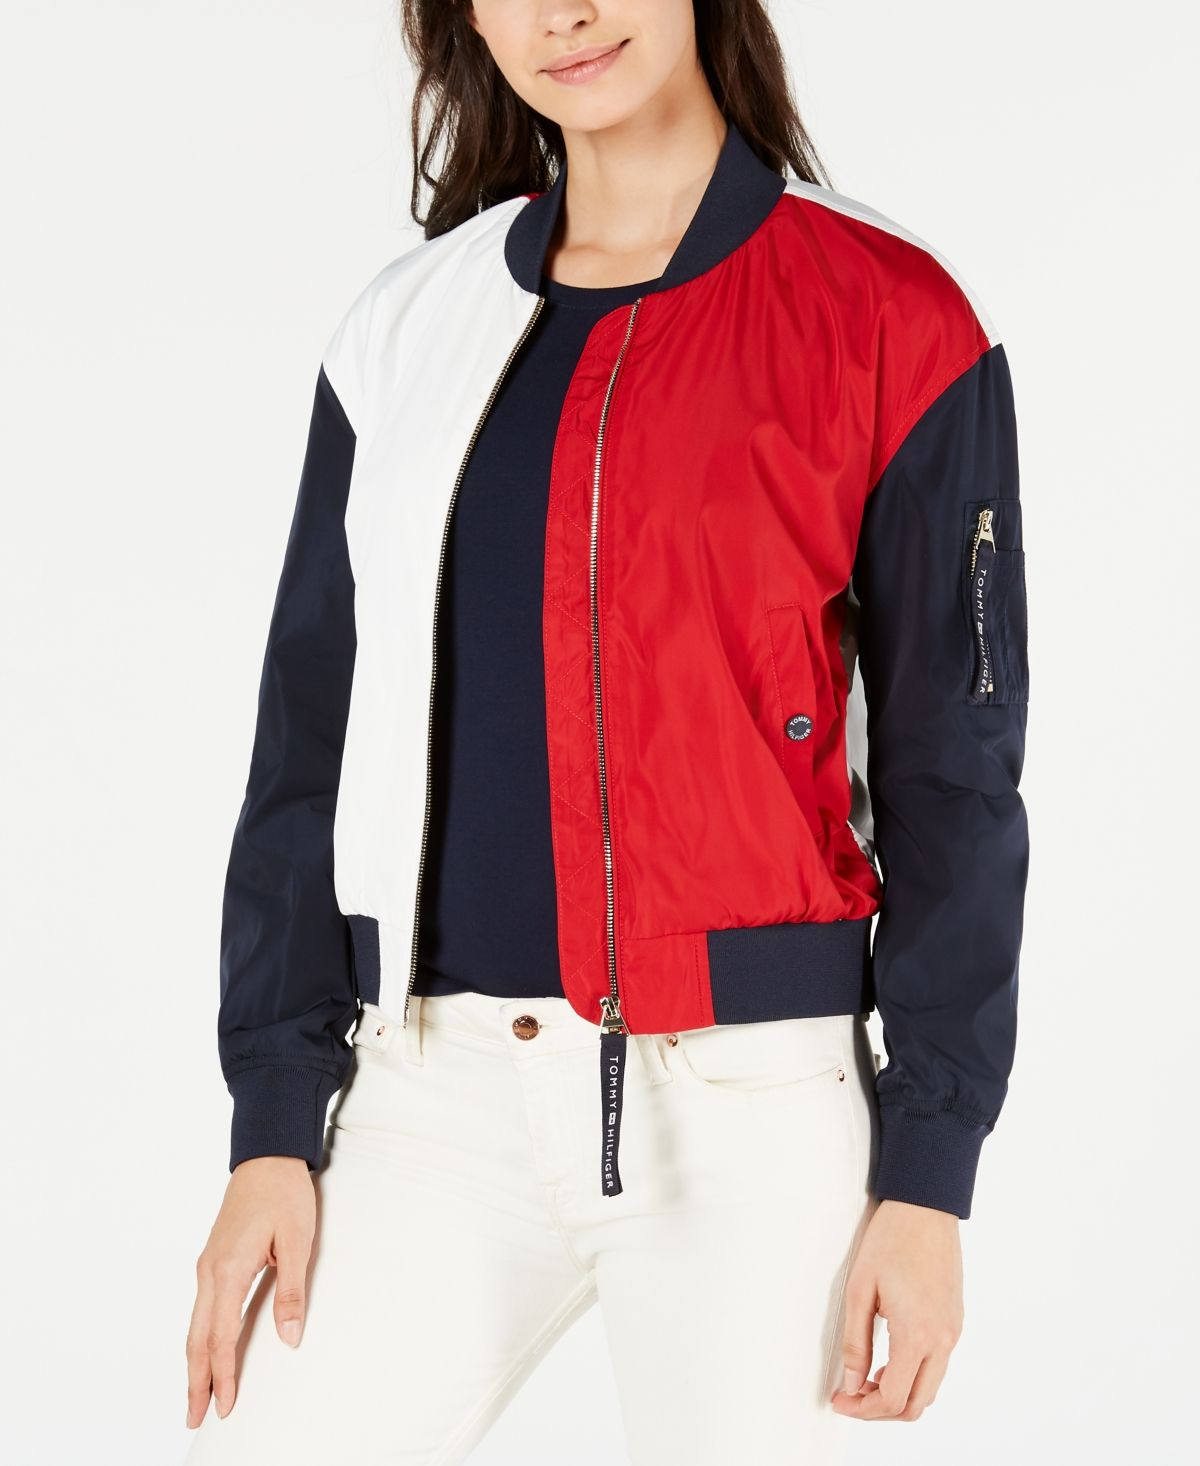 Tommy Hilfiger Colorblocked Bomber Jacket Created For Macy S Red White Blue Blazer Jackets For Women Bomber Jacket Shopping Outfit [ 1466 x 1200 Pixel ]